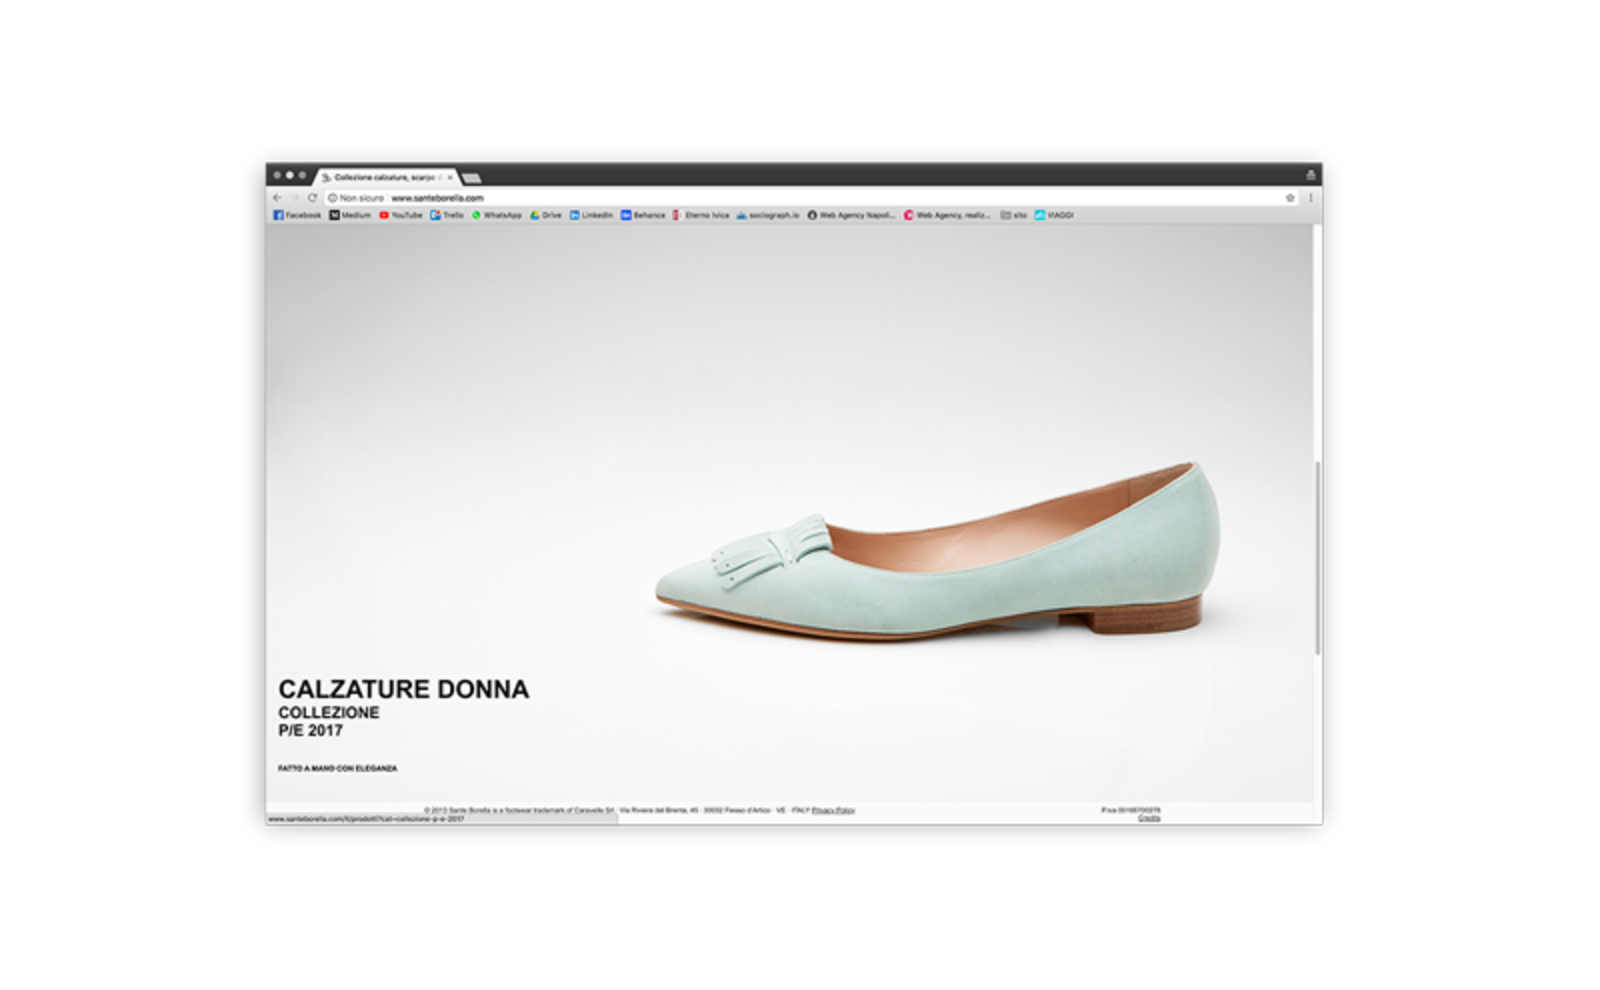 example of Sante Borella shoe photo inserted in one of the pages of the website